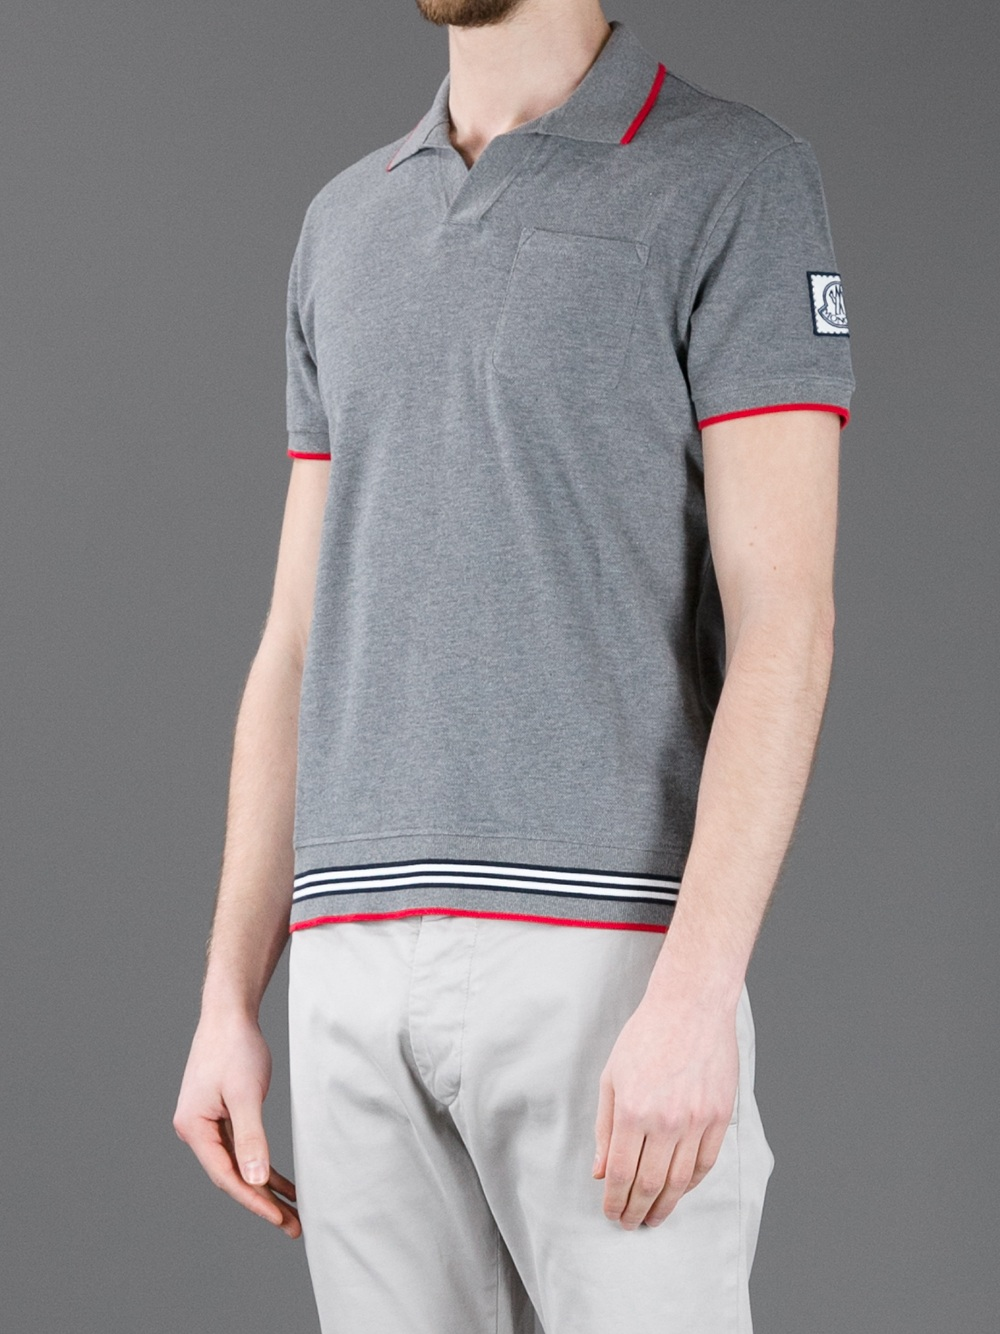 Lyst moncler gamme bleu classic polo shirt in gray for men for Man in polo shirt